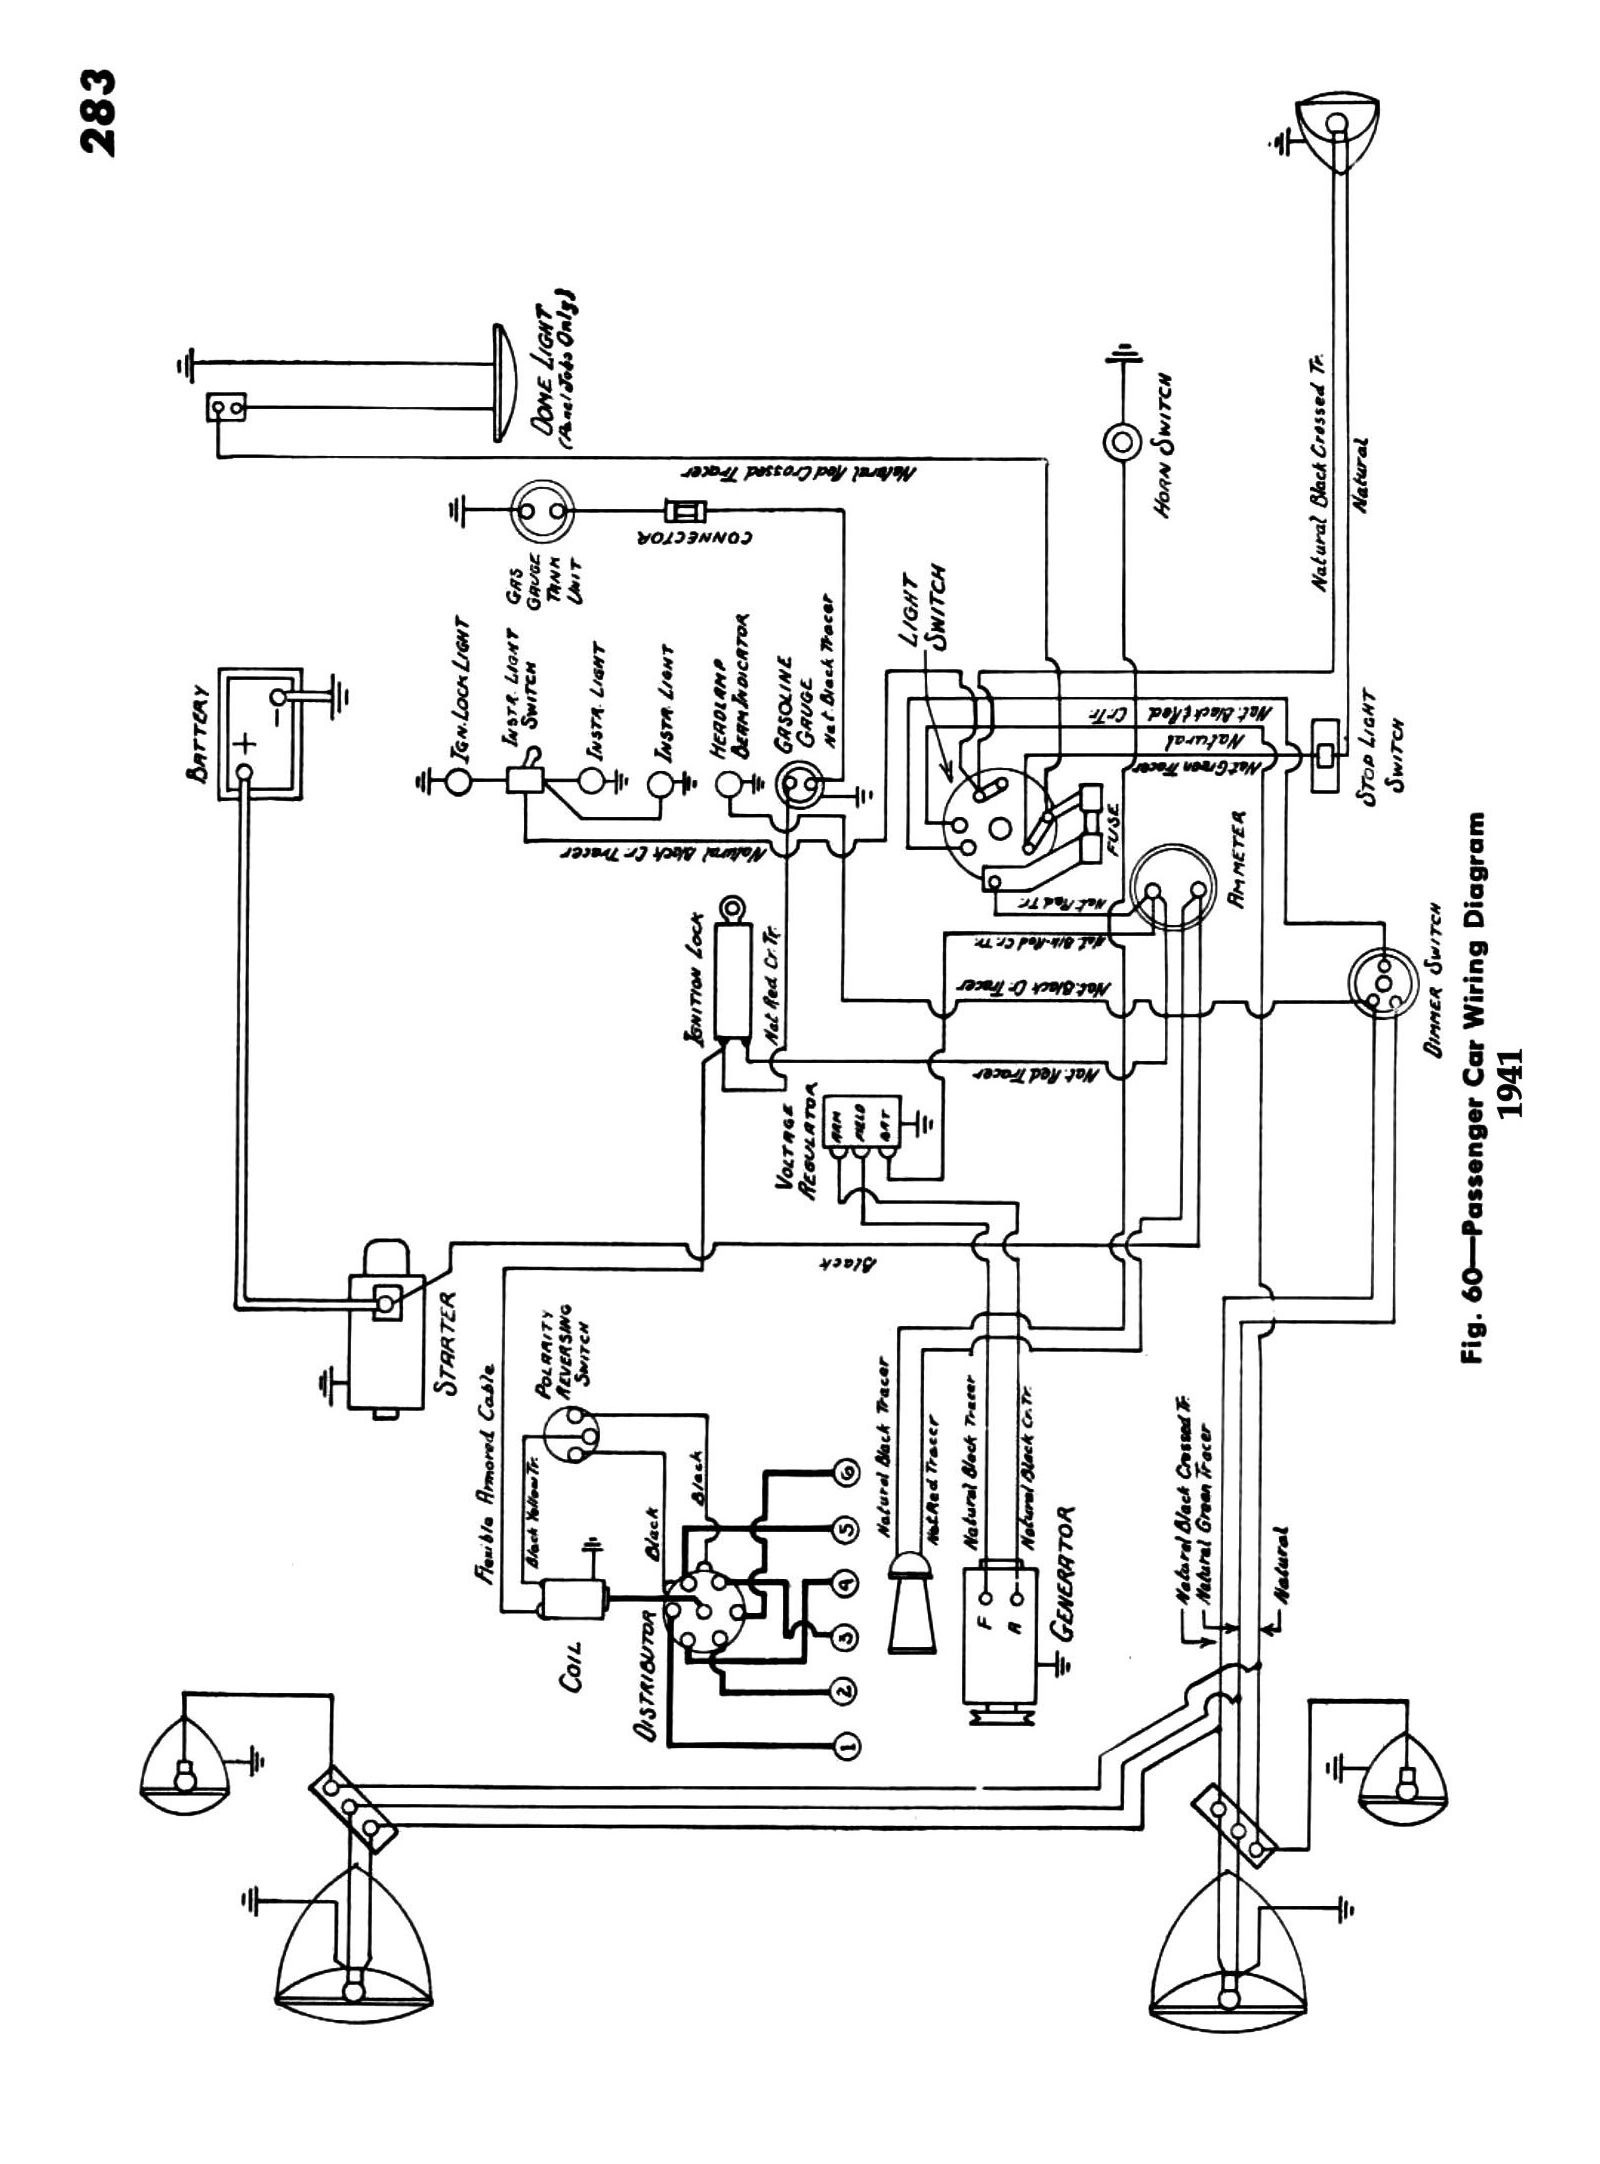 Oldsmobile Headlight Switch Wiring Diagram Libraries Transmission Diagrams 1949 Diagramsoldsmobile 350 Third Level